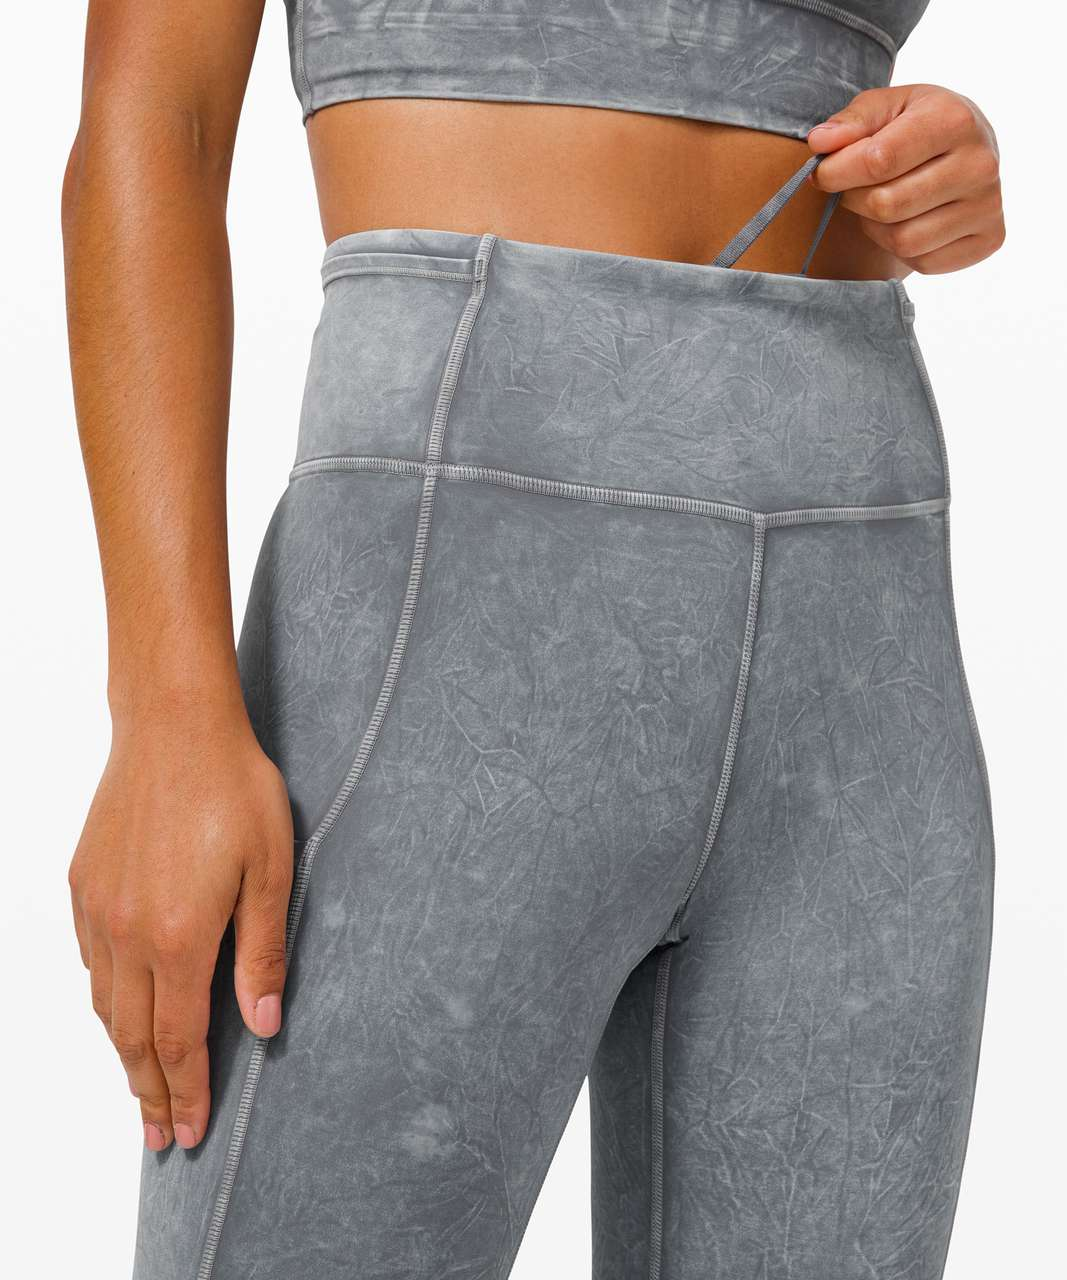 "Lululemon Fast and Free High Rise Tight 25"" *Ice Dye - Ice Wash Asphalt Grey"